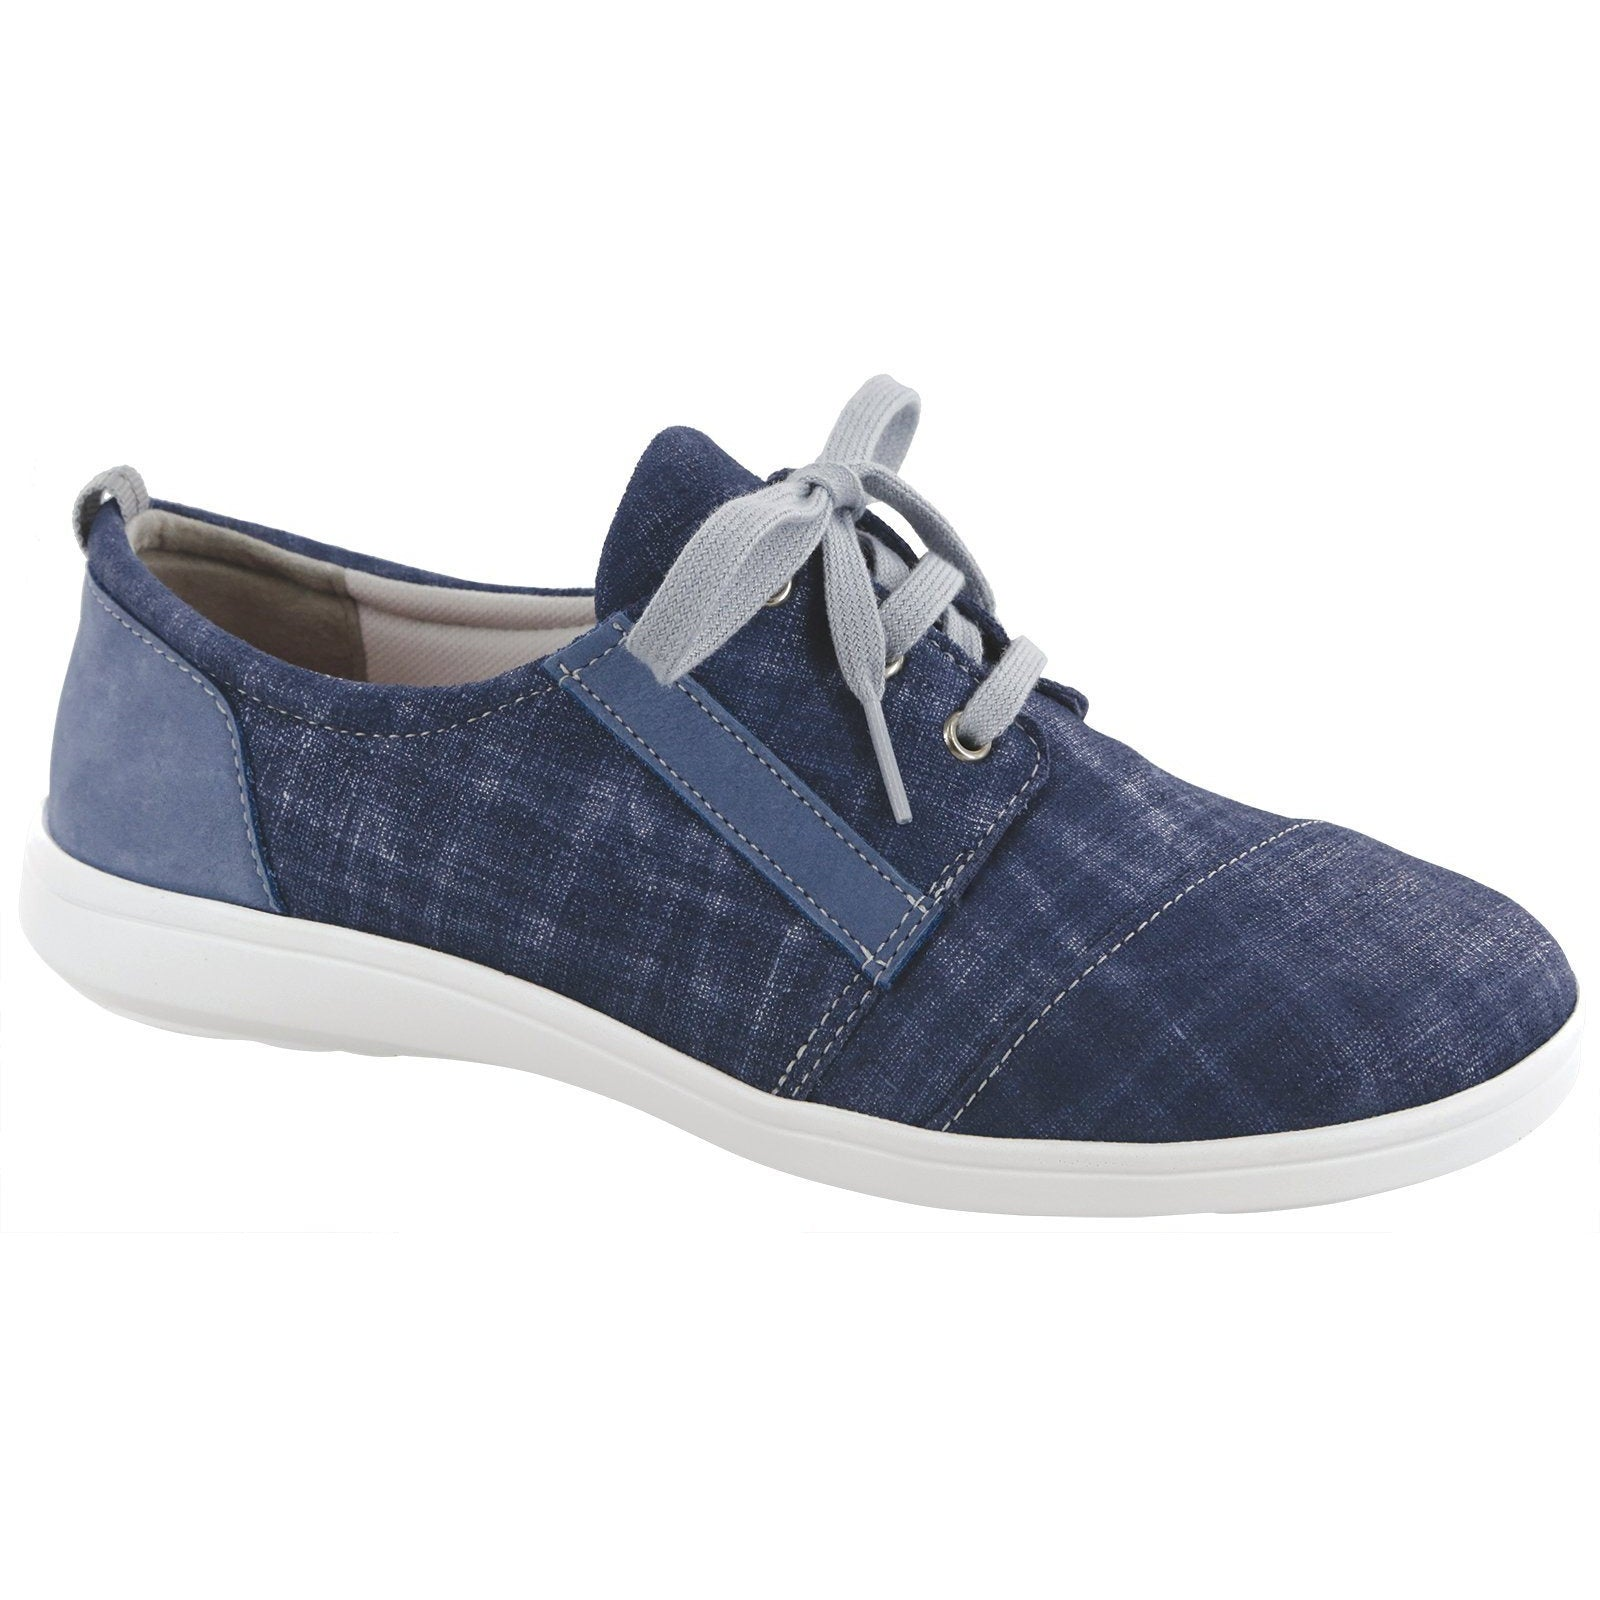 Marnie Blue Jay / Nubuck by SAS Shoes: Comfort Women's Shoes